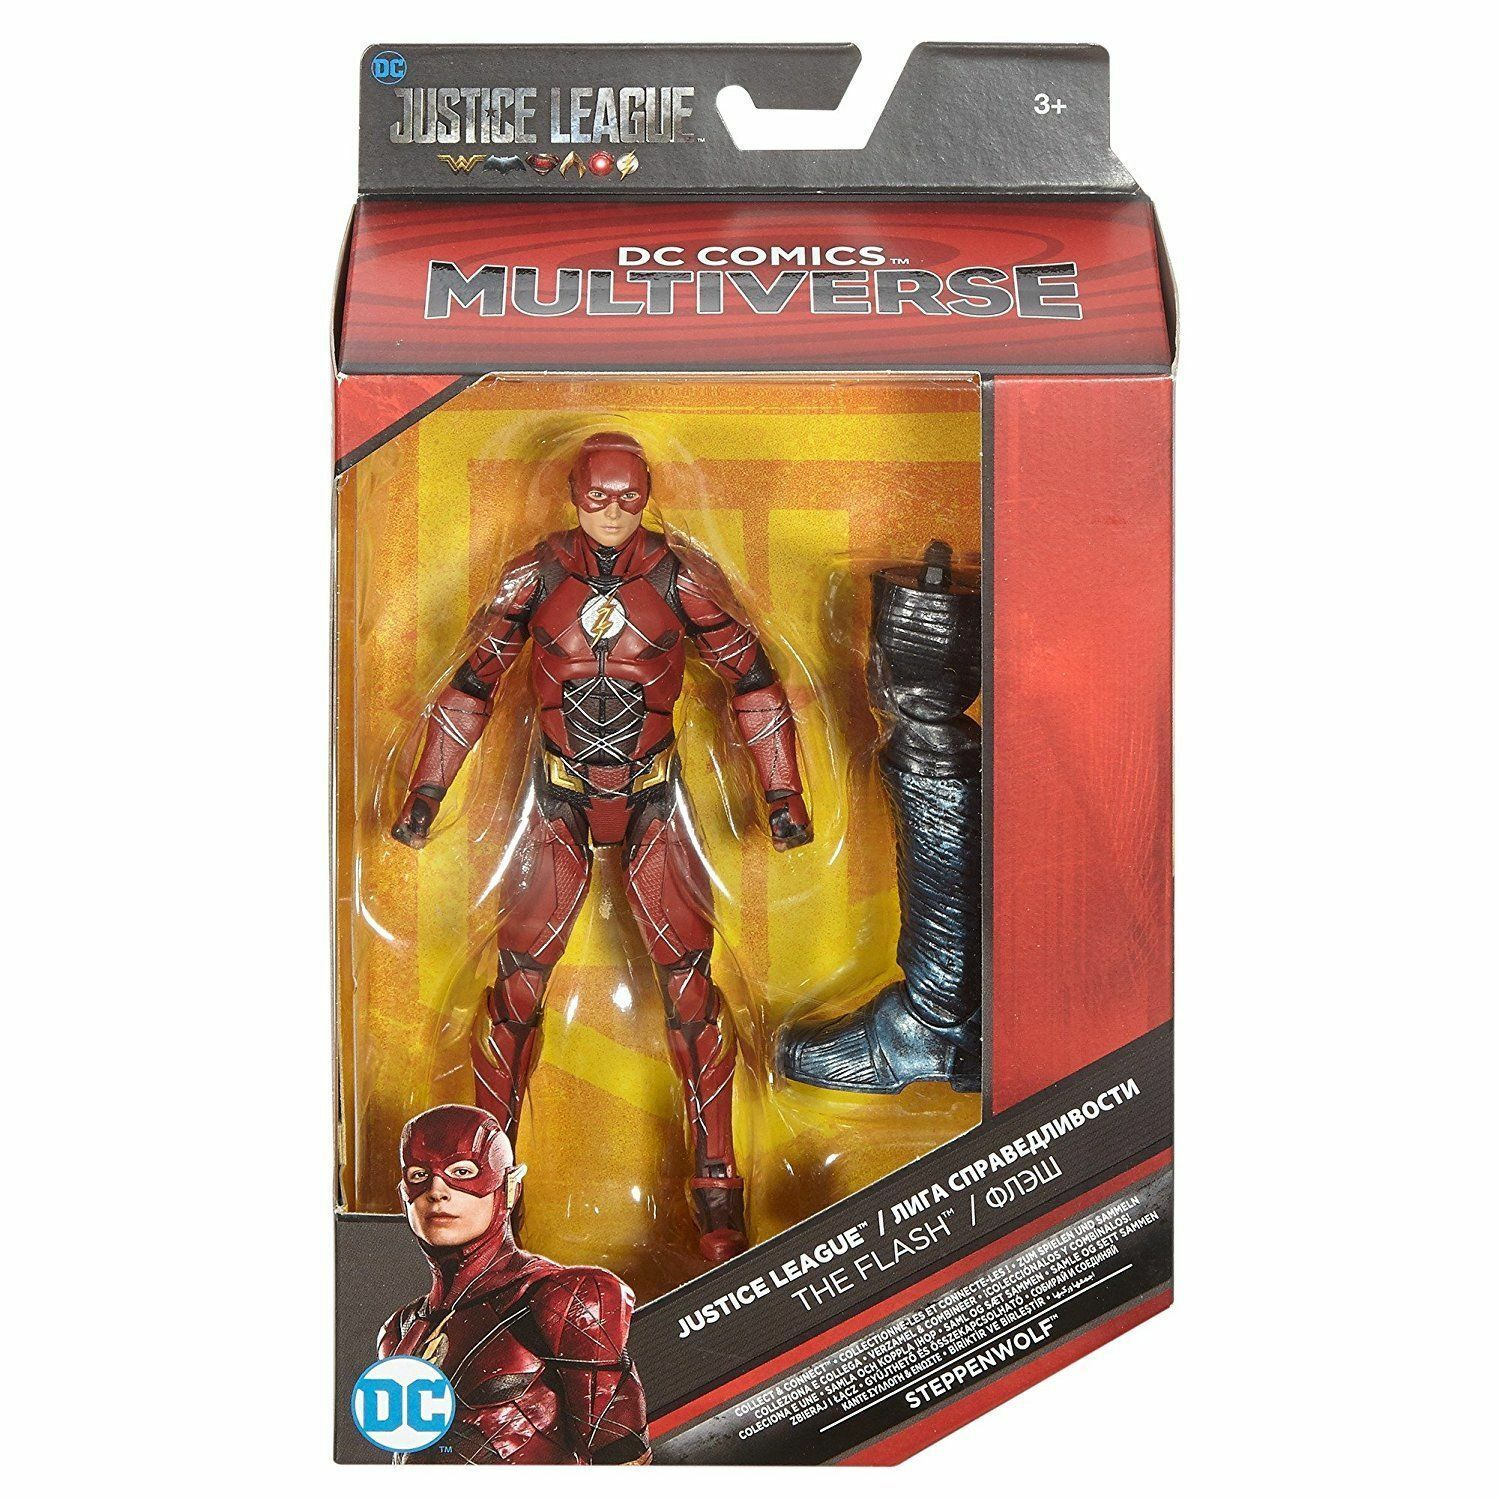 2017 DC Comics Multiverse Justice League THE FLASH Collect & Connect Steppenwolf